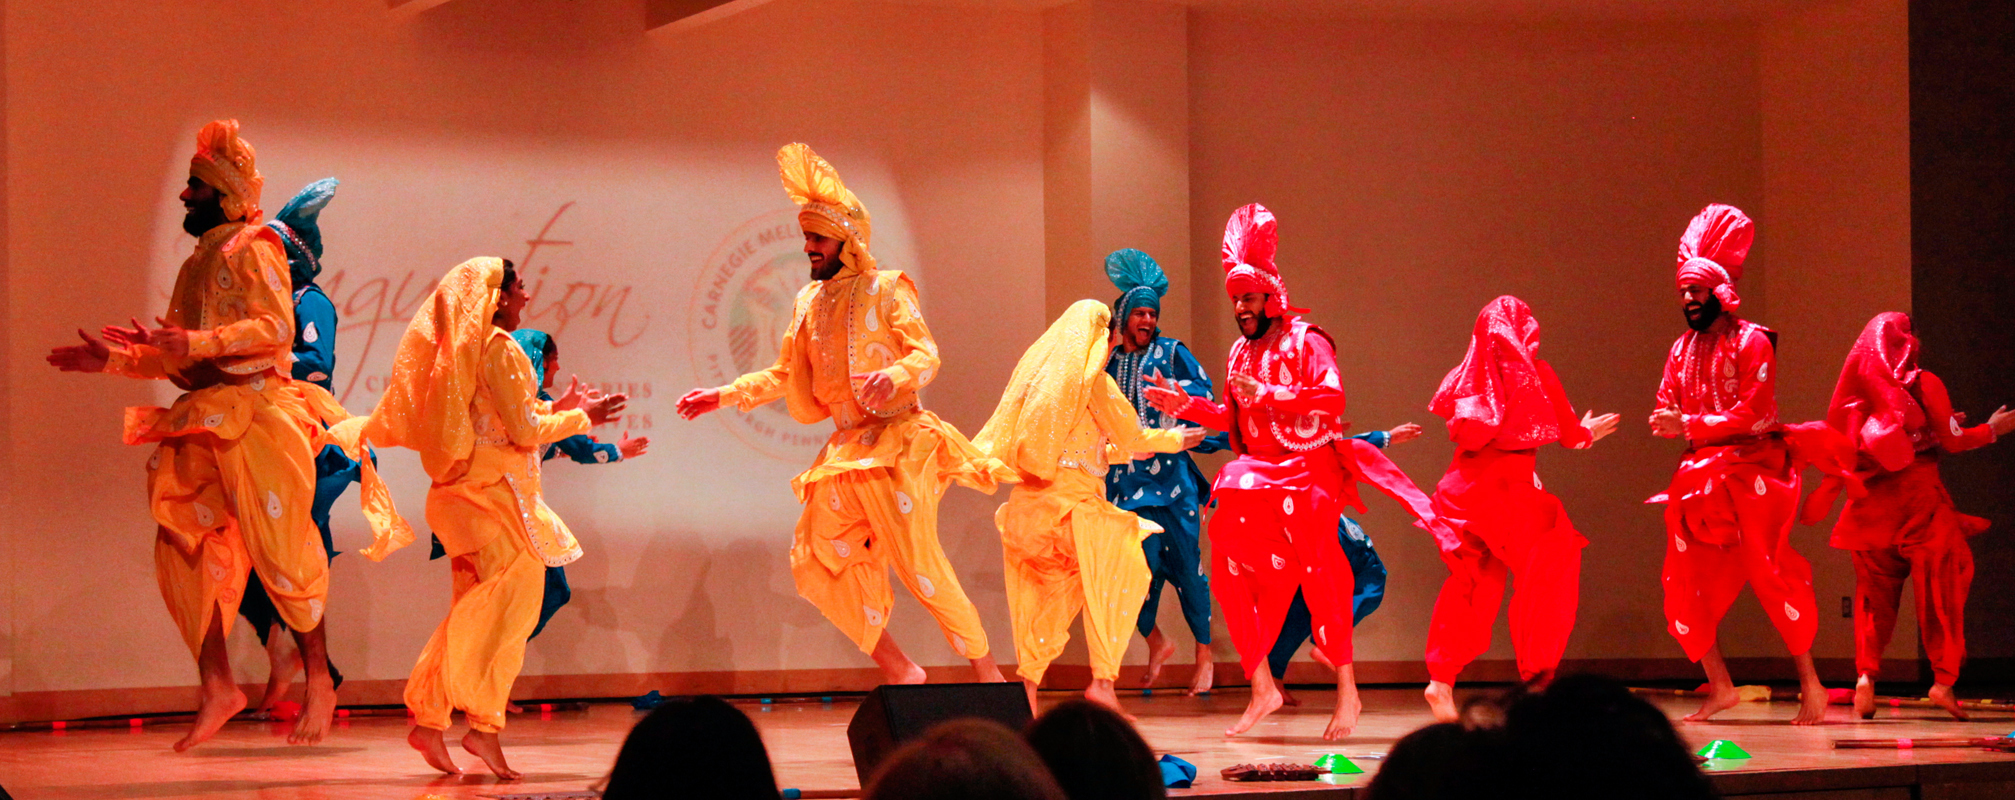 Carnegie Mellon's Bhangra team put on an exhibition during the Inauguration ceremony.  (credit: Michelle  Wan /)